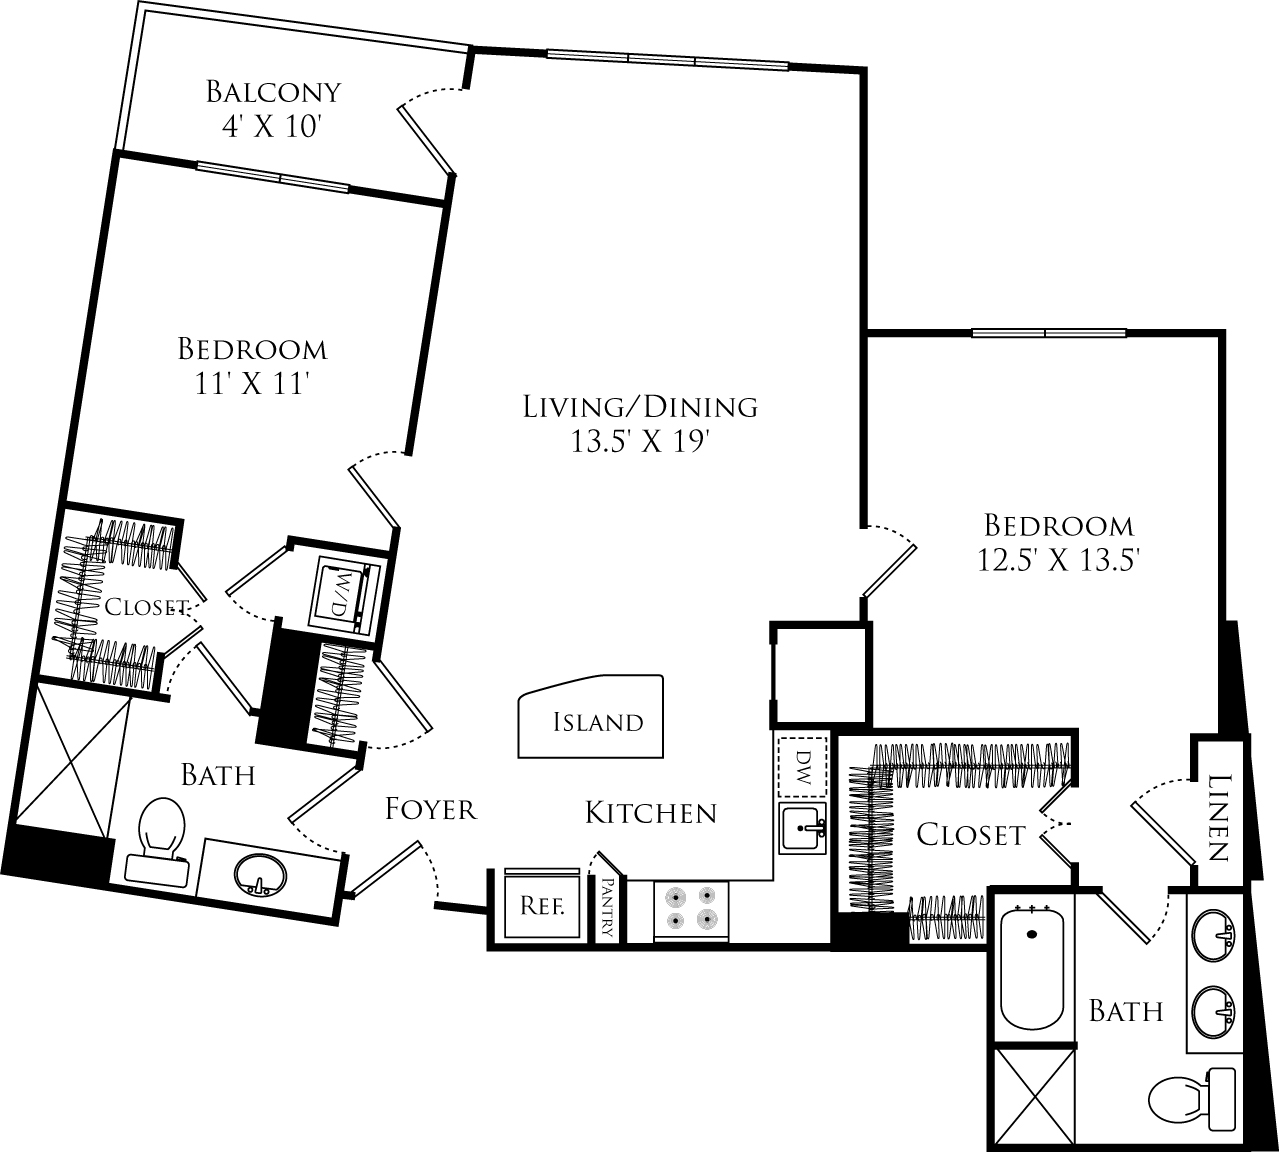 B2E floor plan with 2 beds, 2 baths, and is 1118 square feet